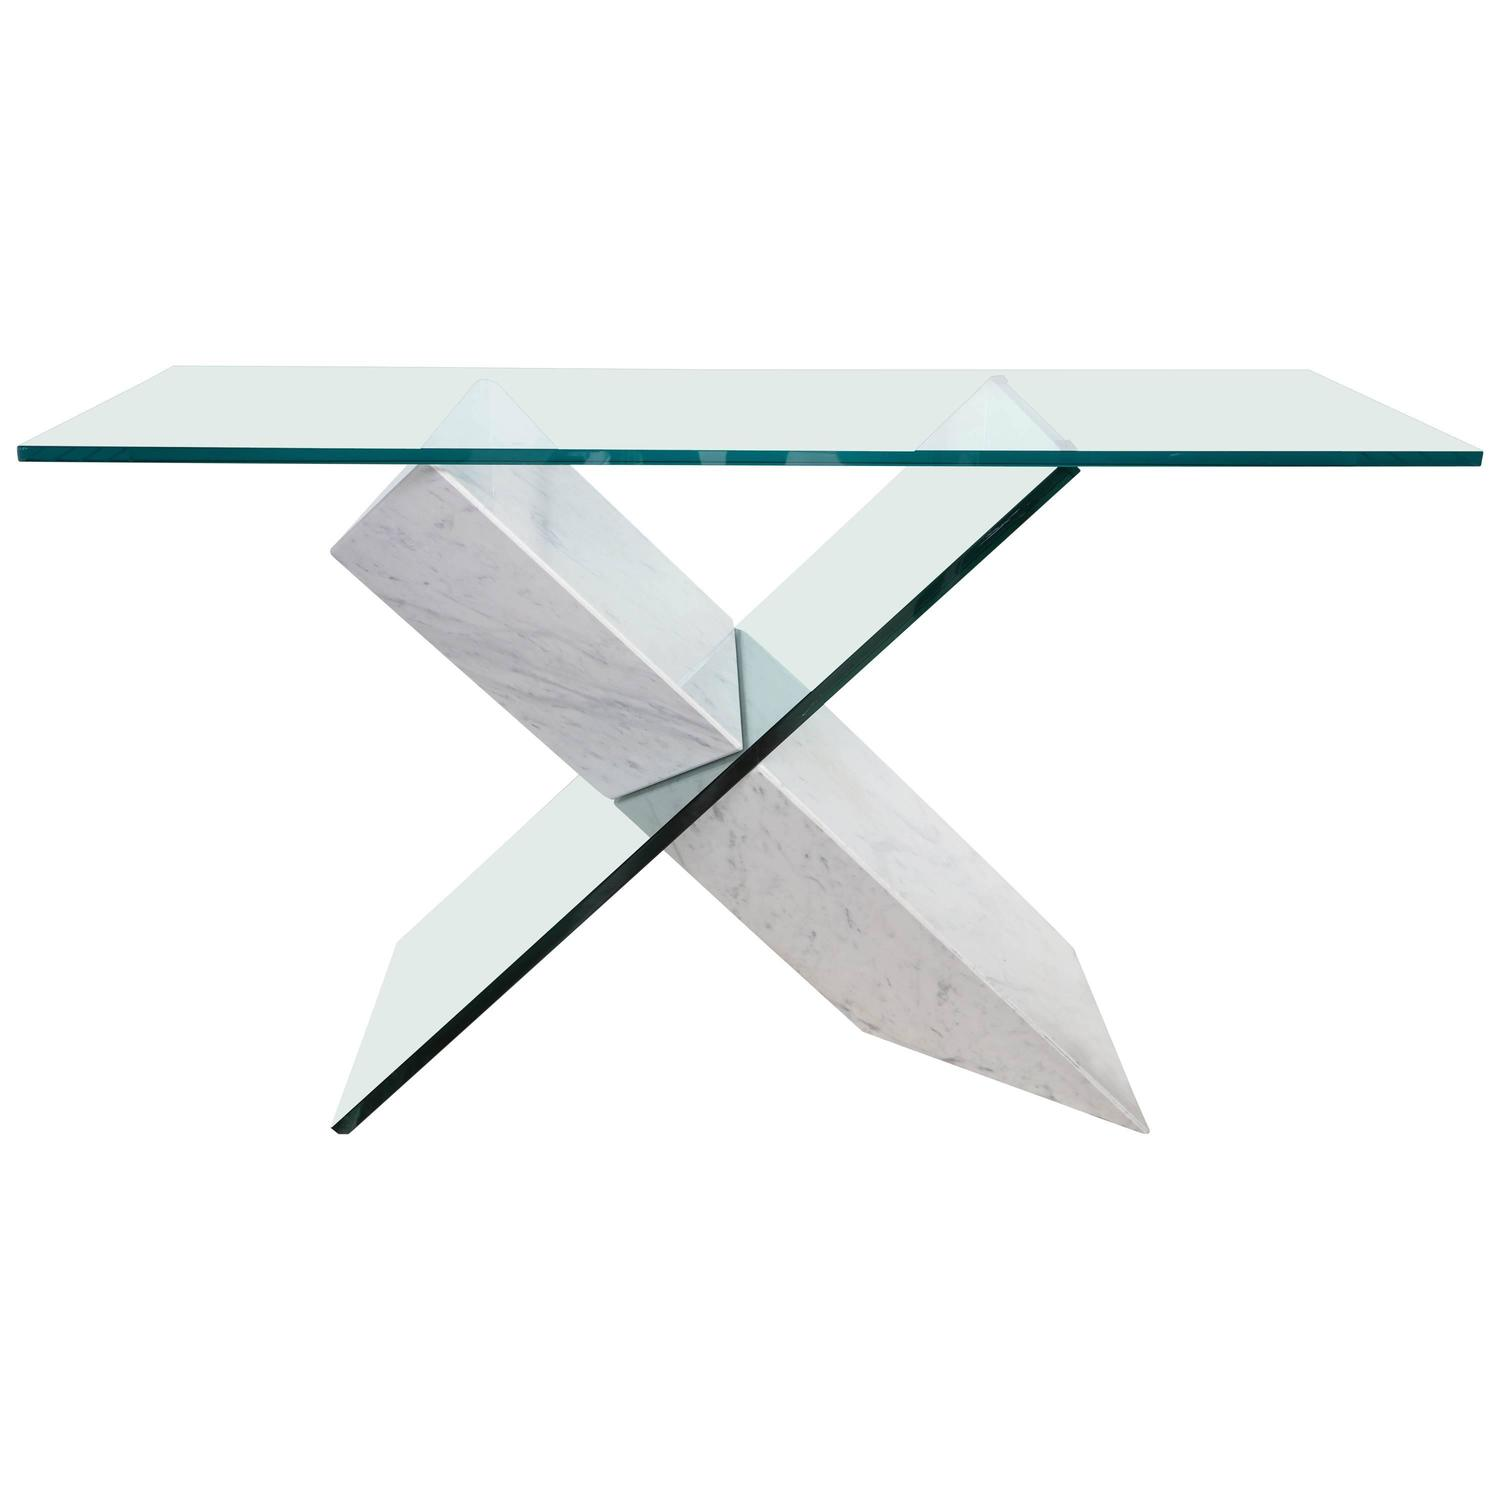 White Marble and Glass Geometric Console Table by Reflex for Roche